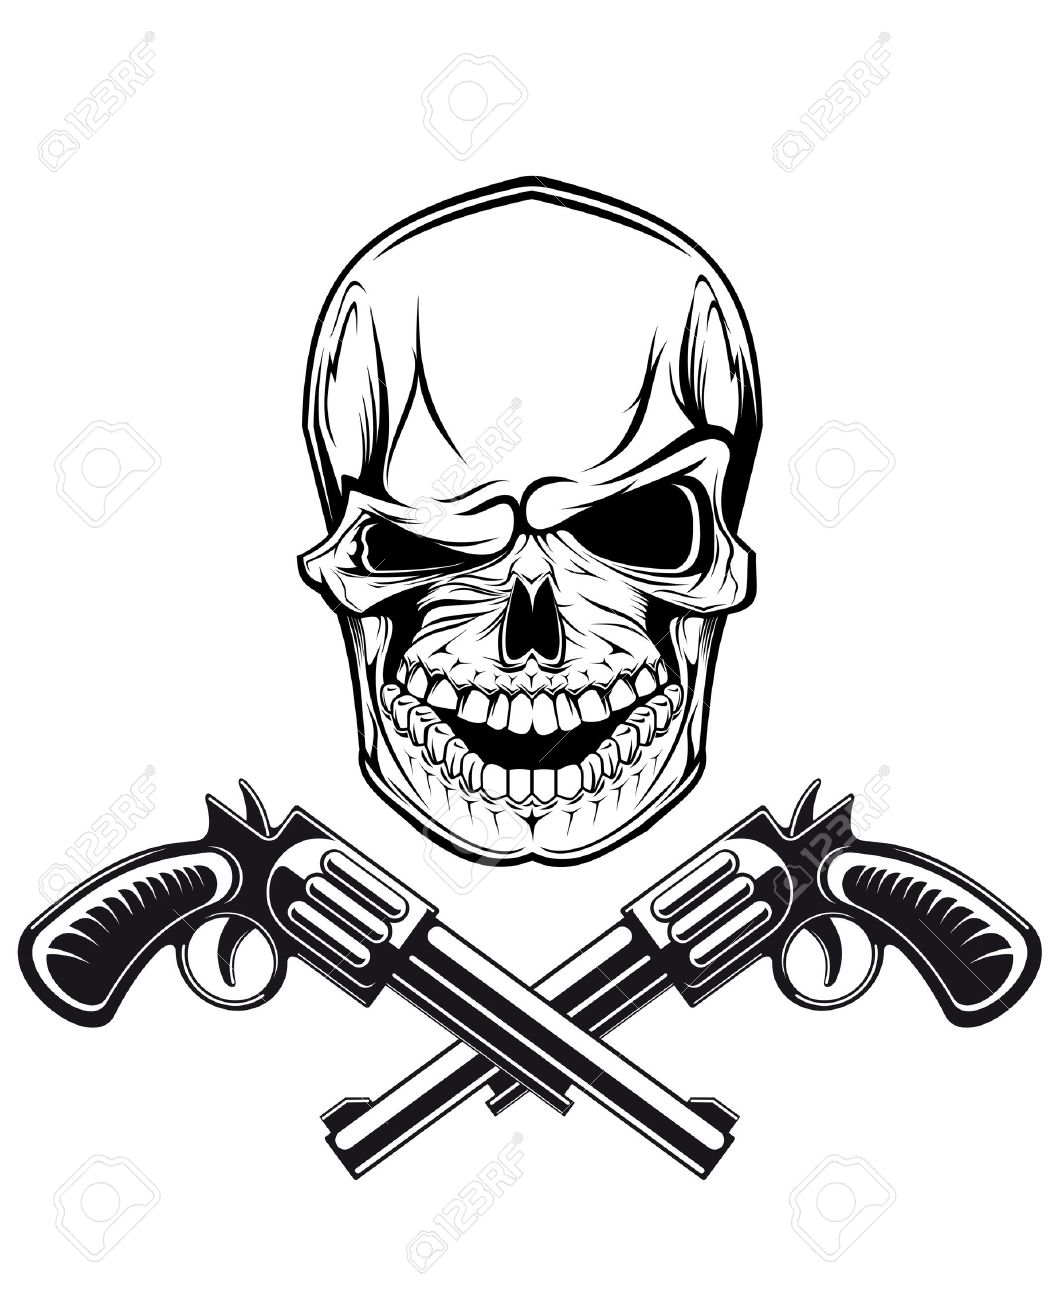 Smiling skull with revolvers for tattoo design Stock Vector - 14400010